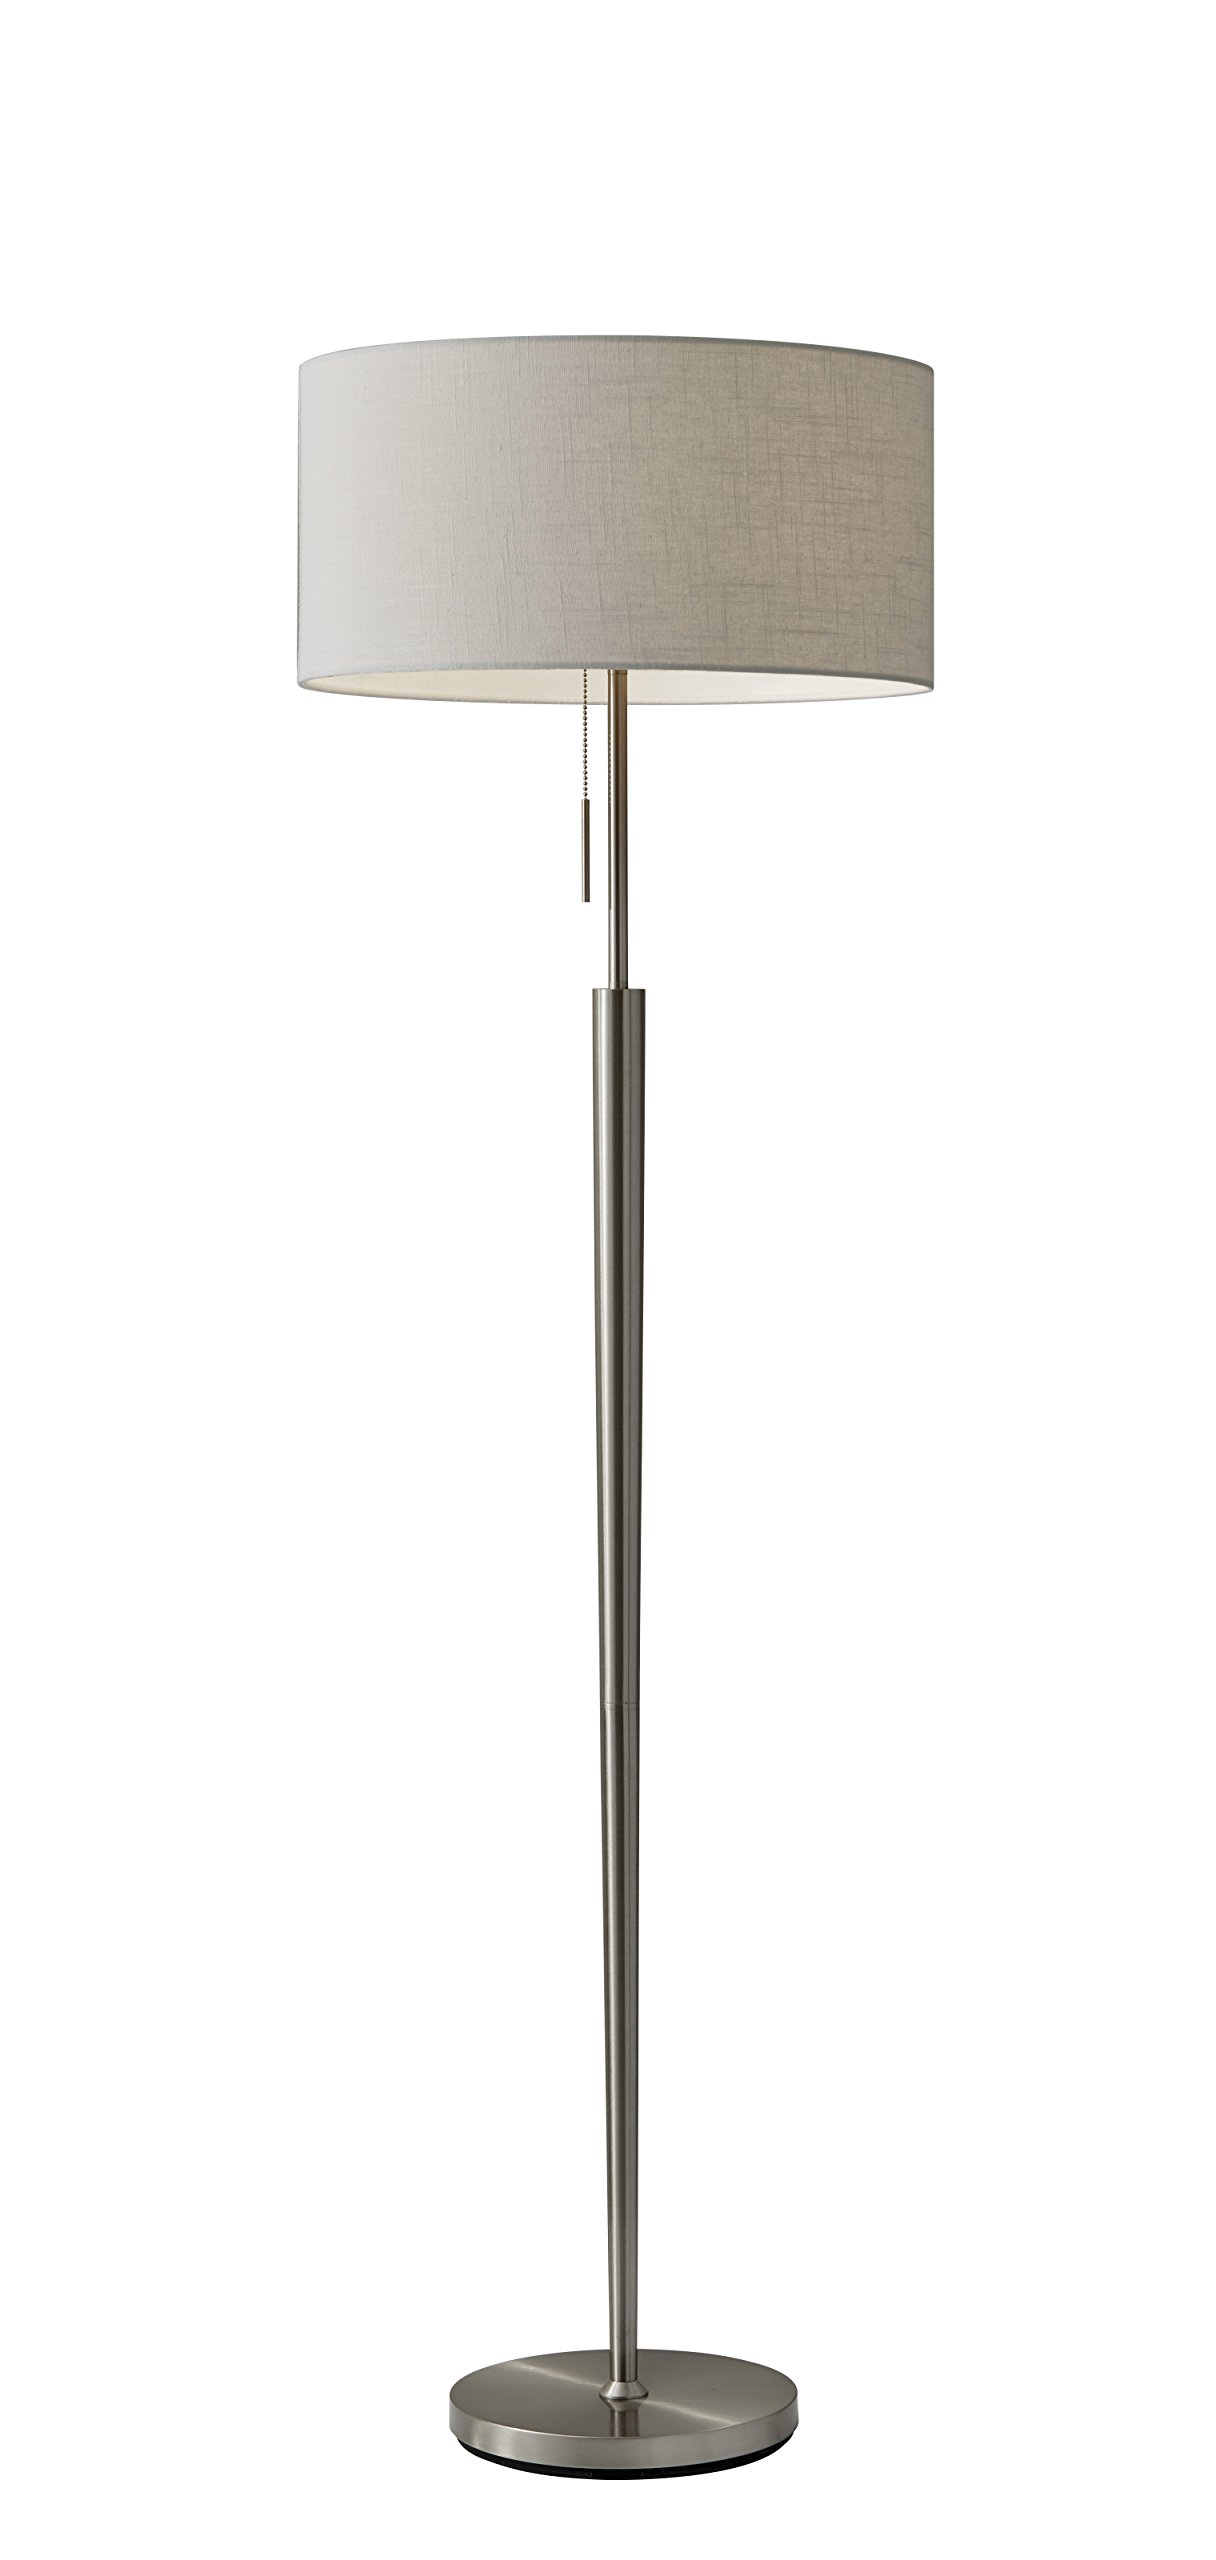 Adesso 3457-22 Hayworth 65'' Floor Lamp, Satin Steel, Smart Outlet Compatible